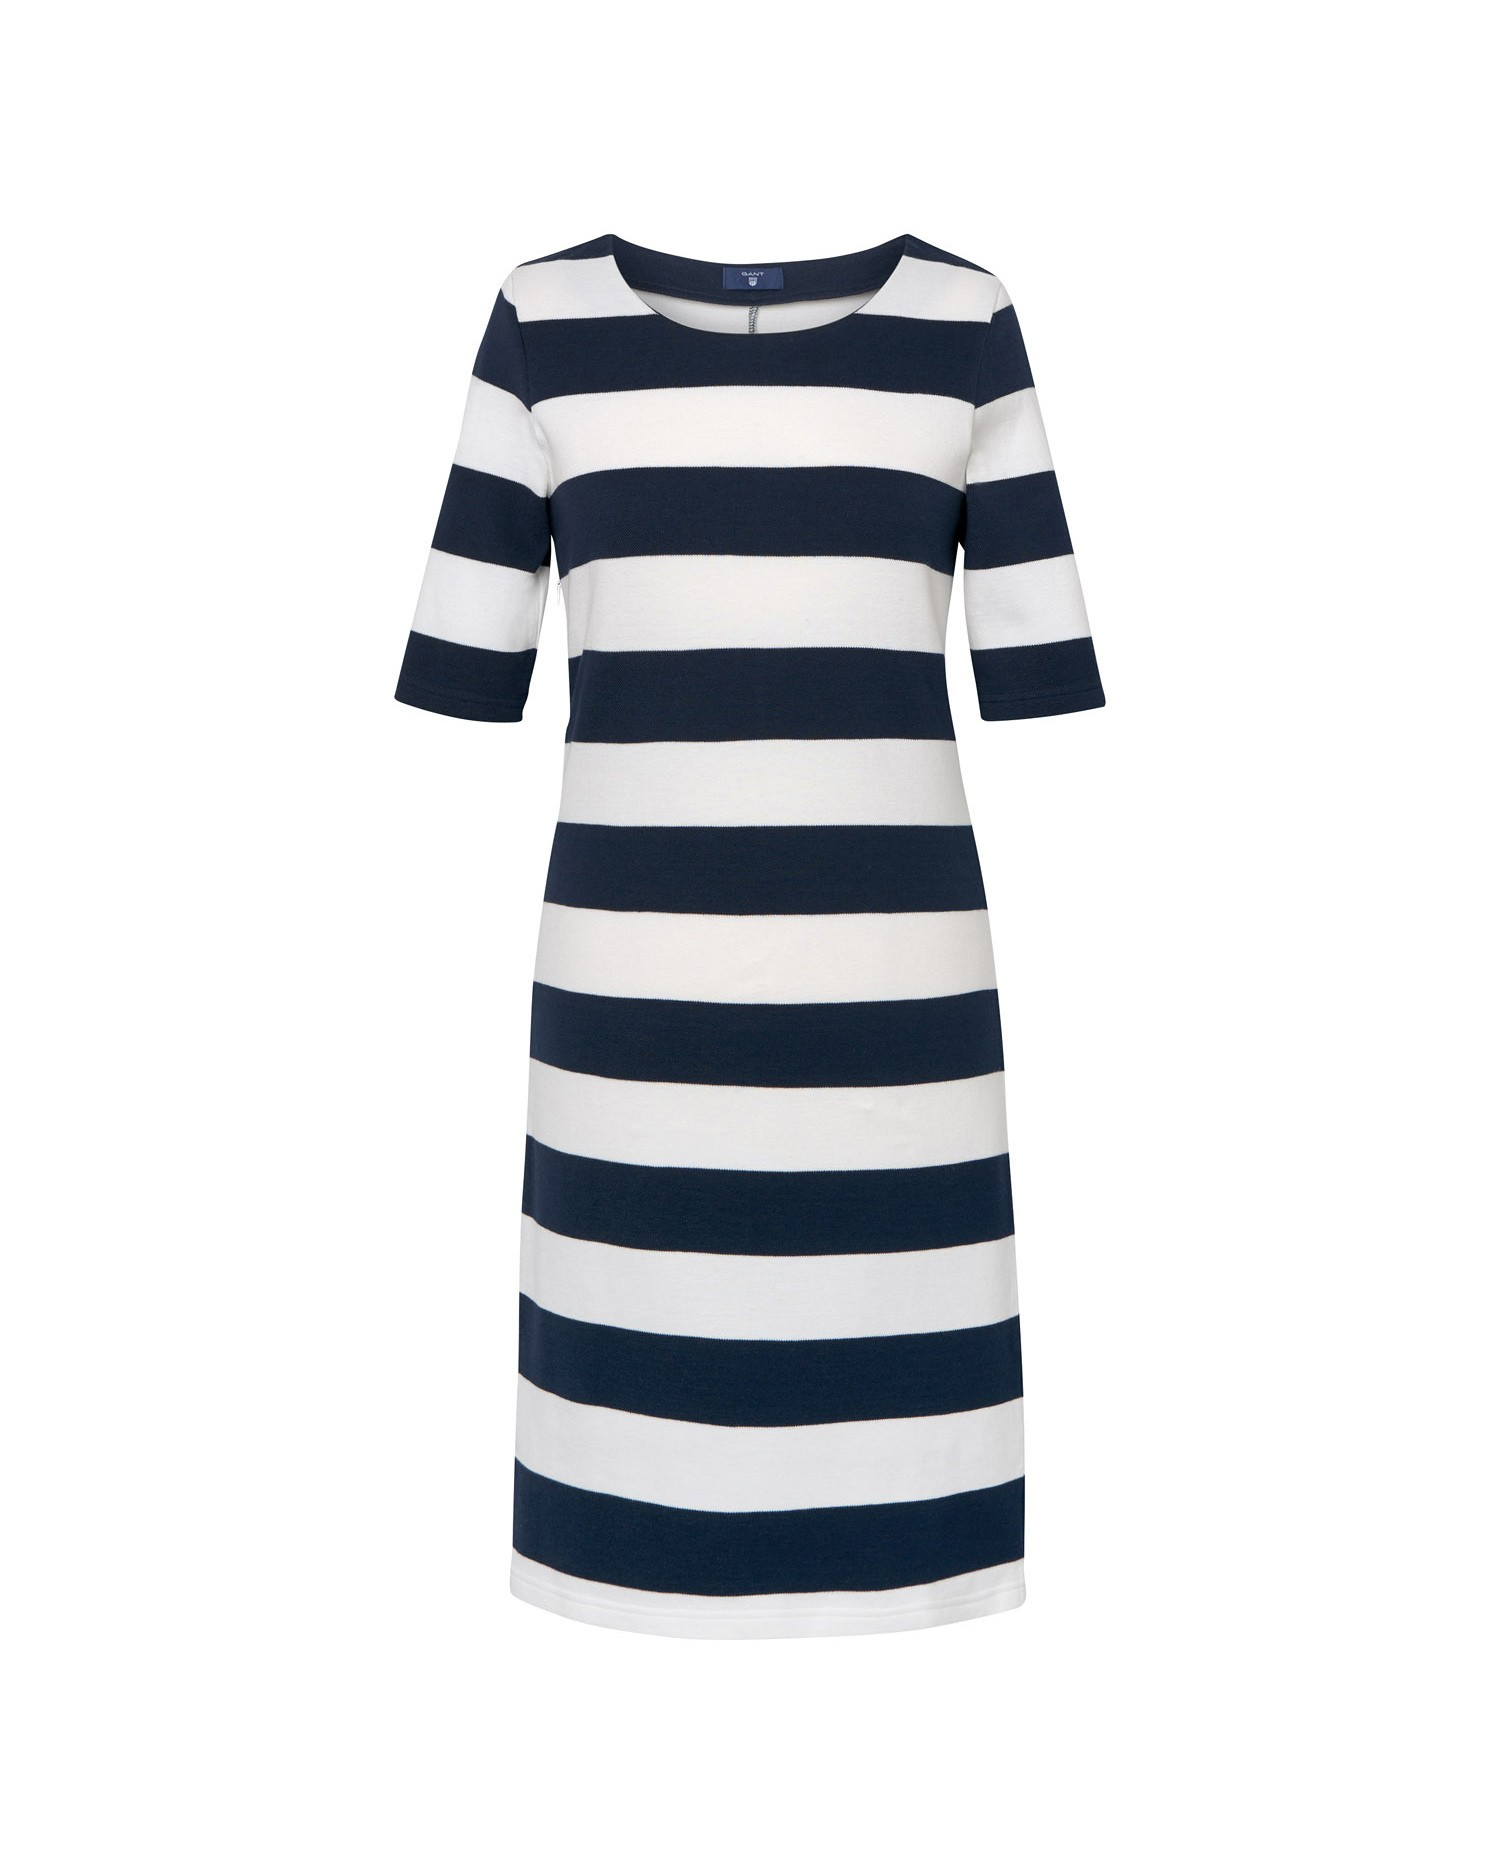 GANT Women's Barstripe Piqué Dress - 4202301